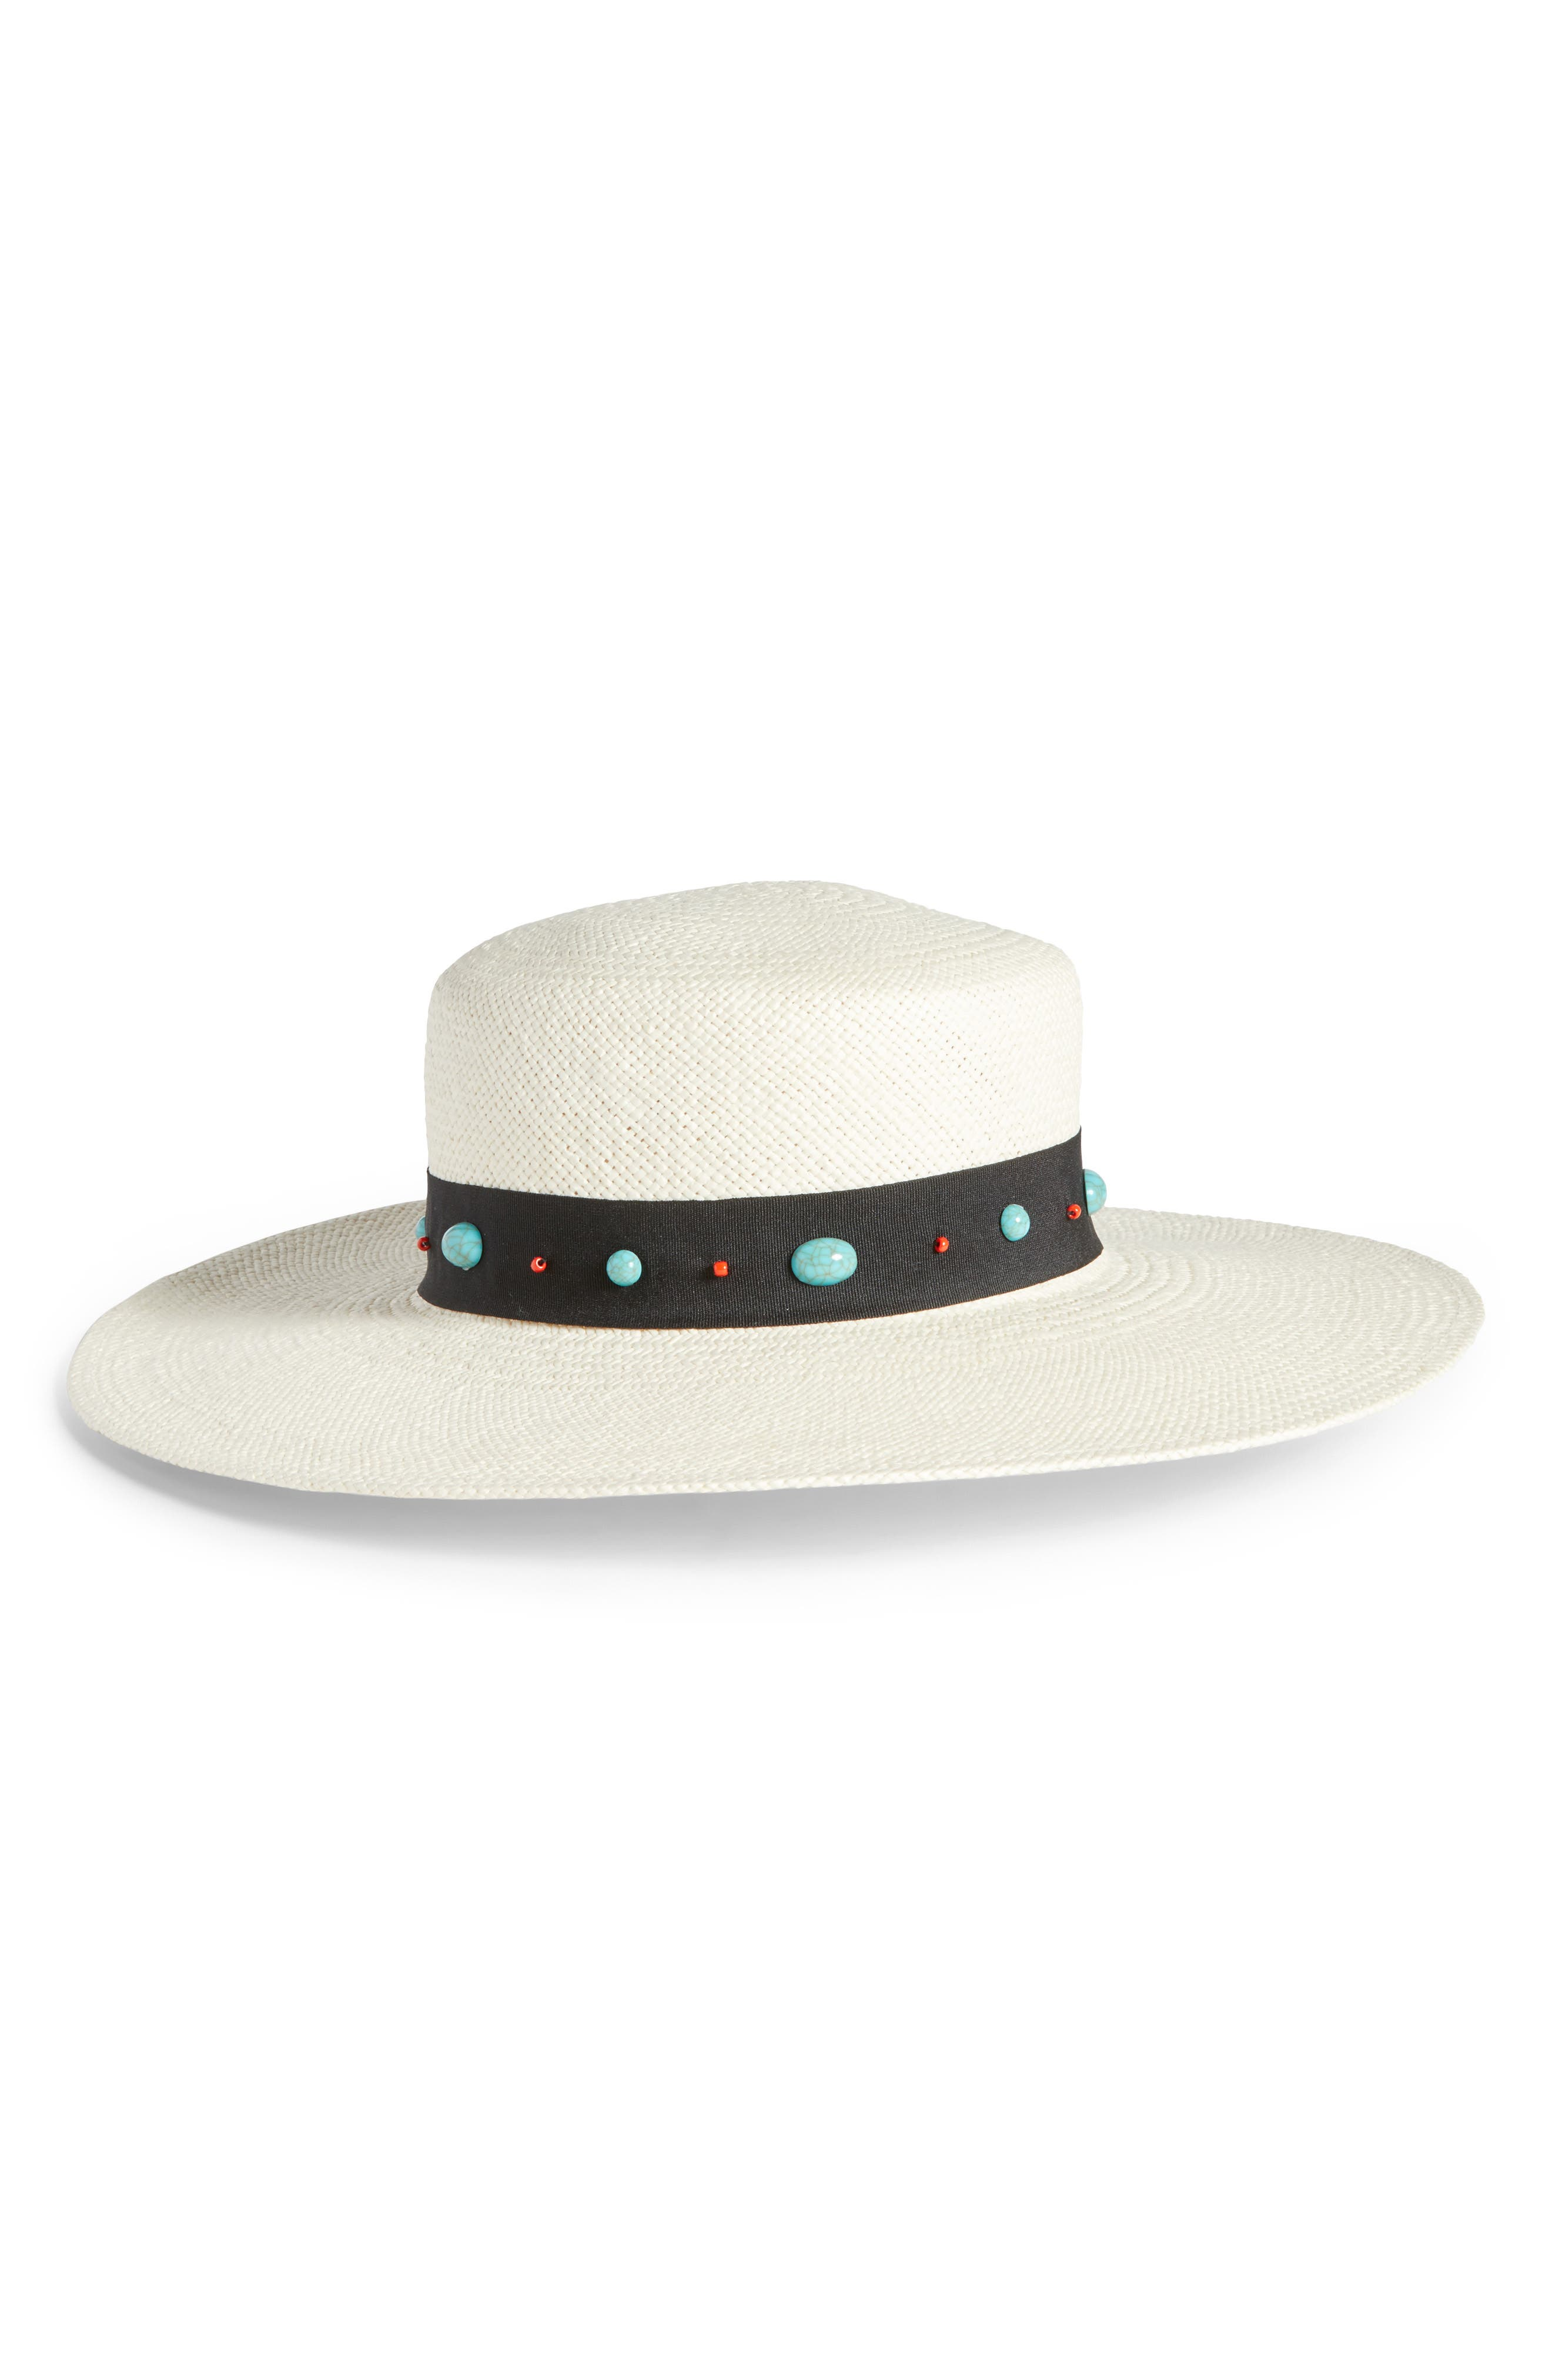 Western Straw Boater Hat,                         Main,                         color, Ivory